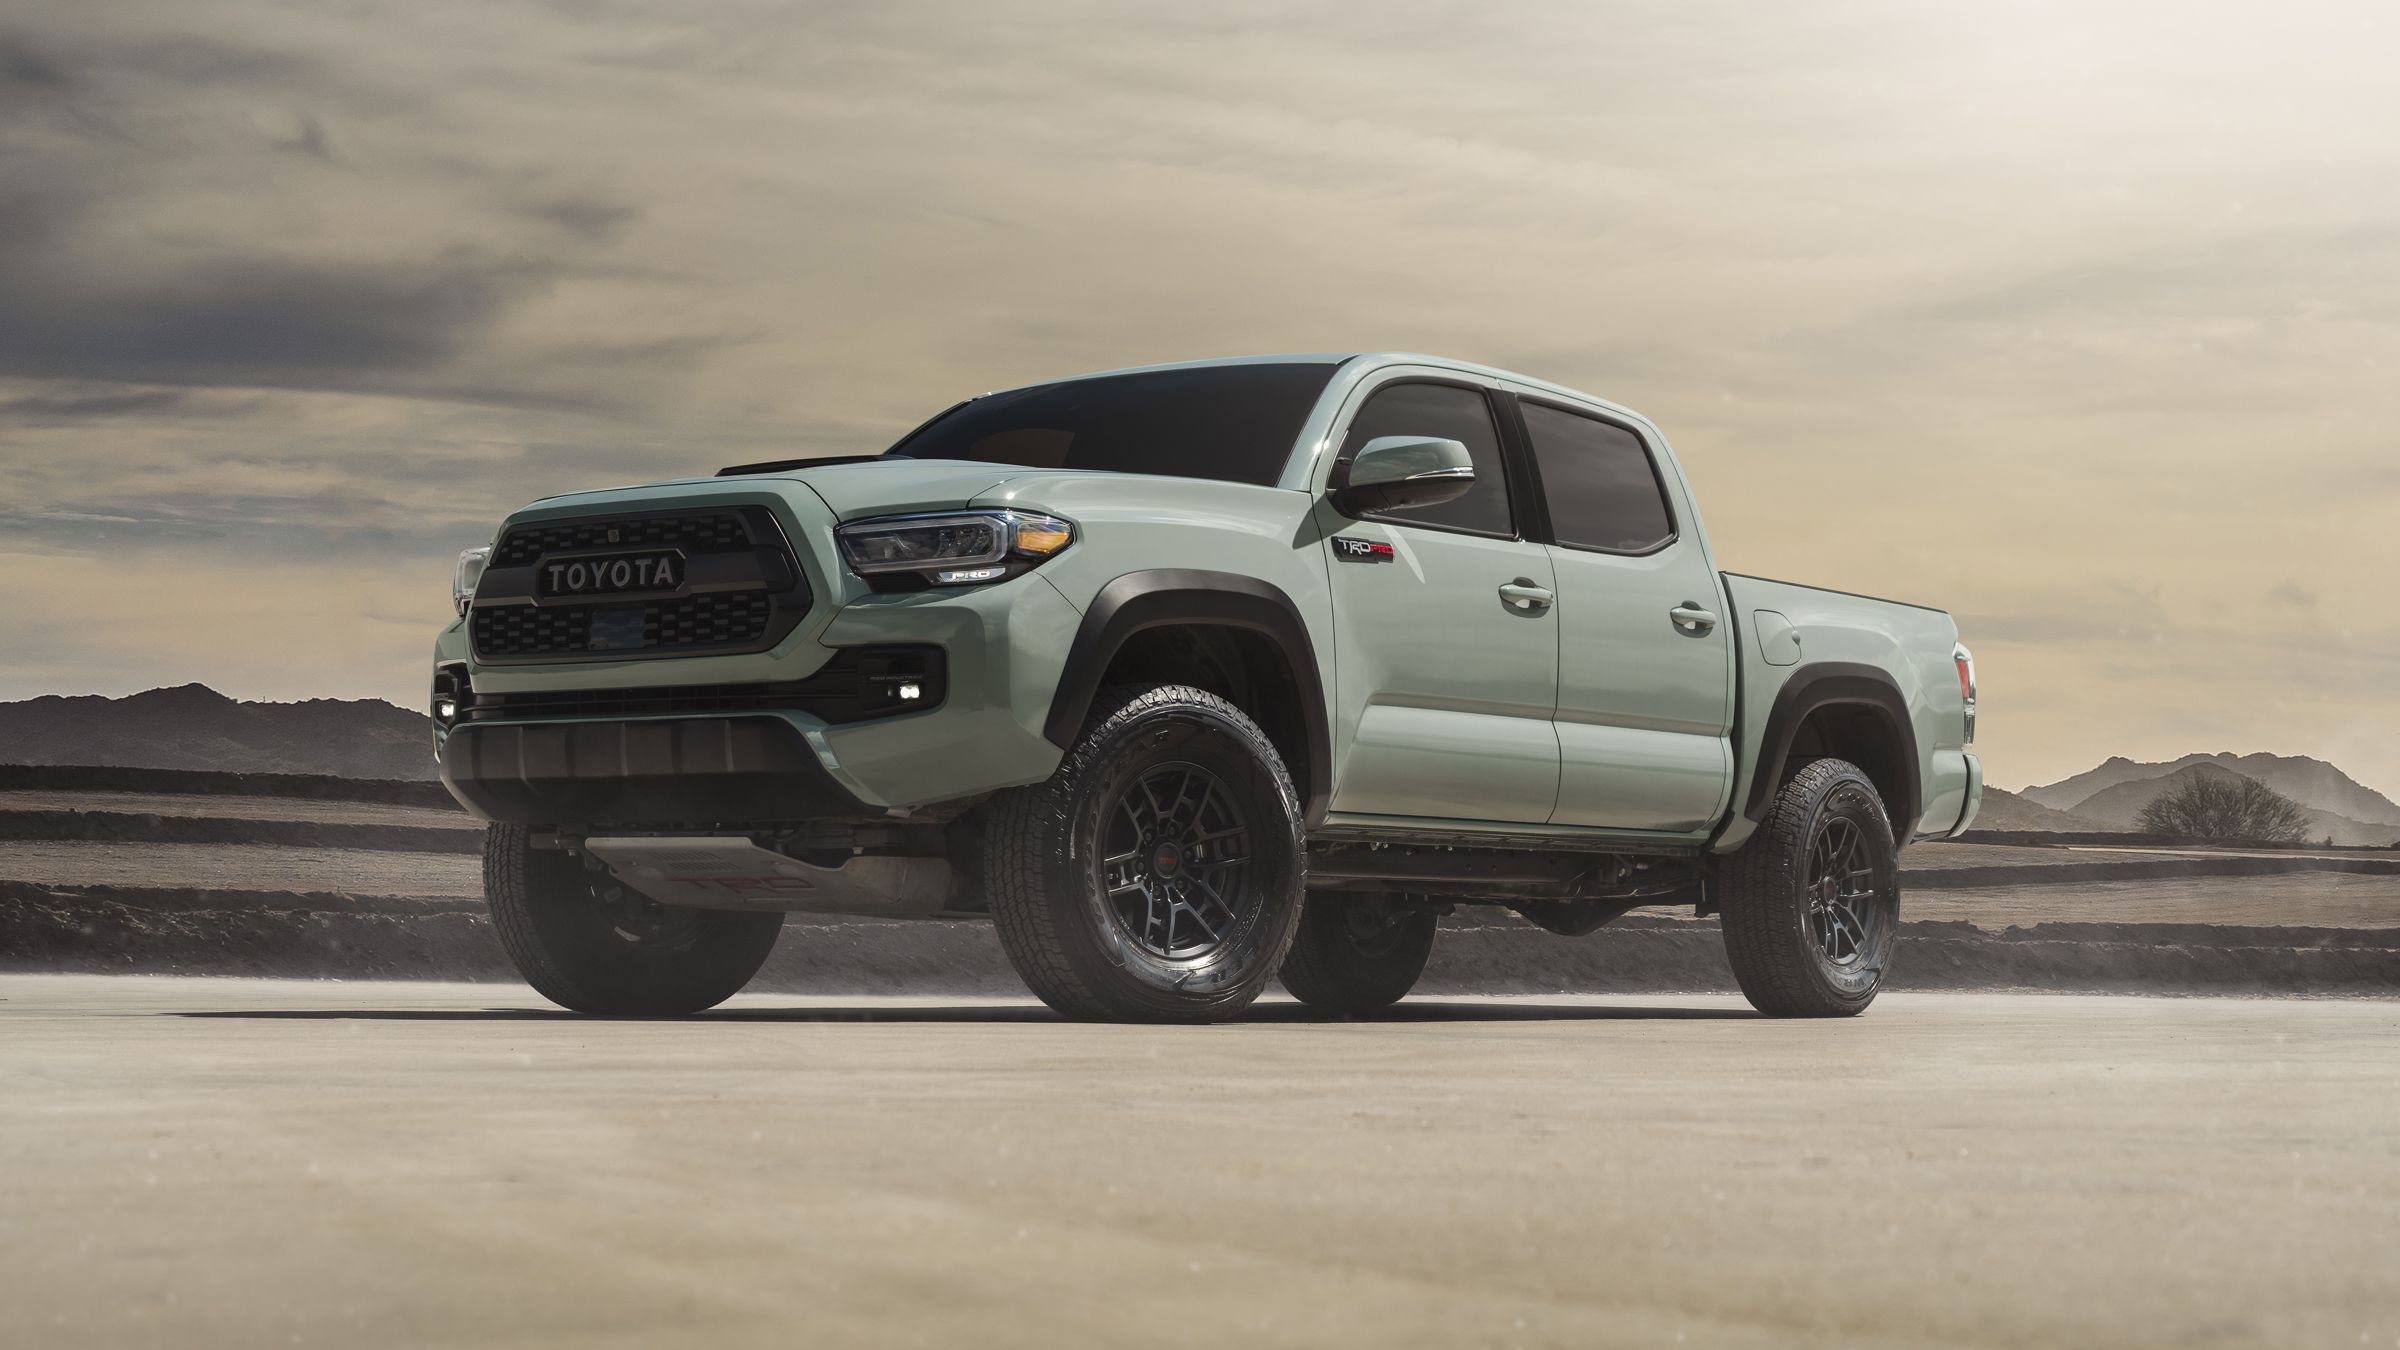 Toyota Announces 2021 Trd Pro And Sr5 Model Changes In 2020 Toyota Trd Pro Toyota Tacoma Trd Pro Toyota Tacoma